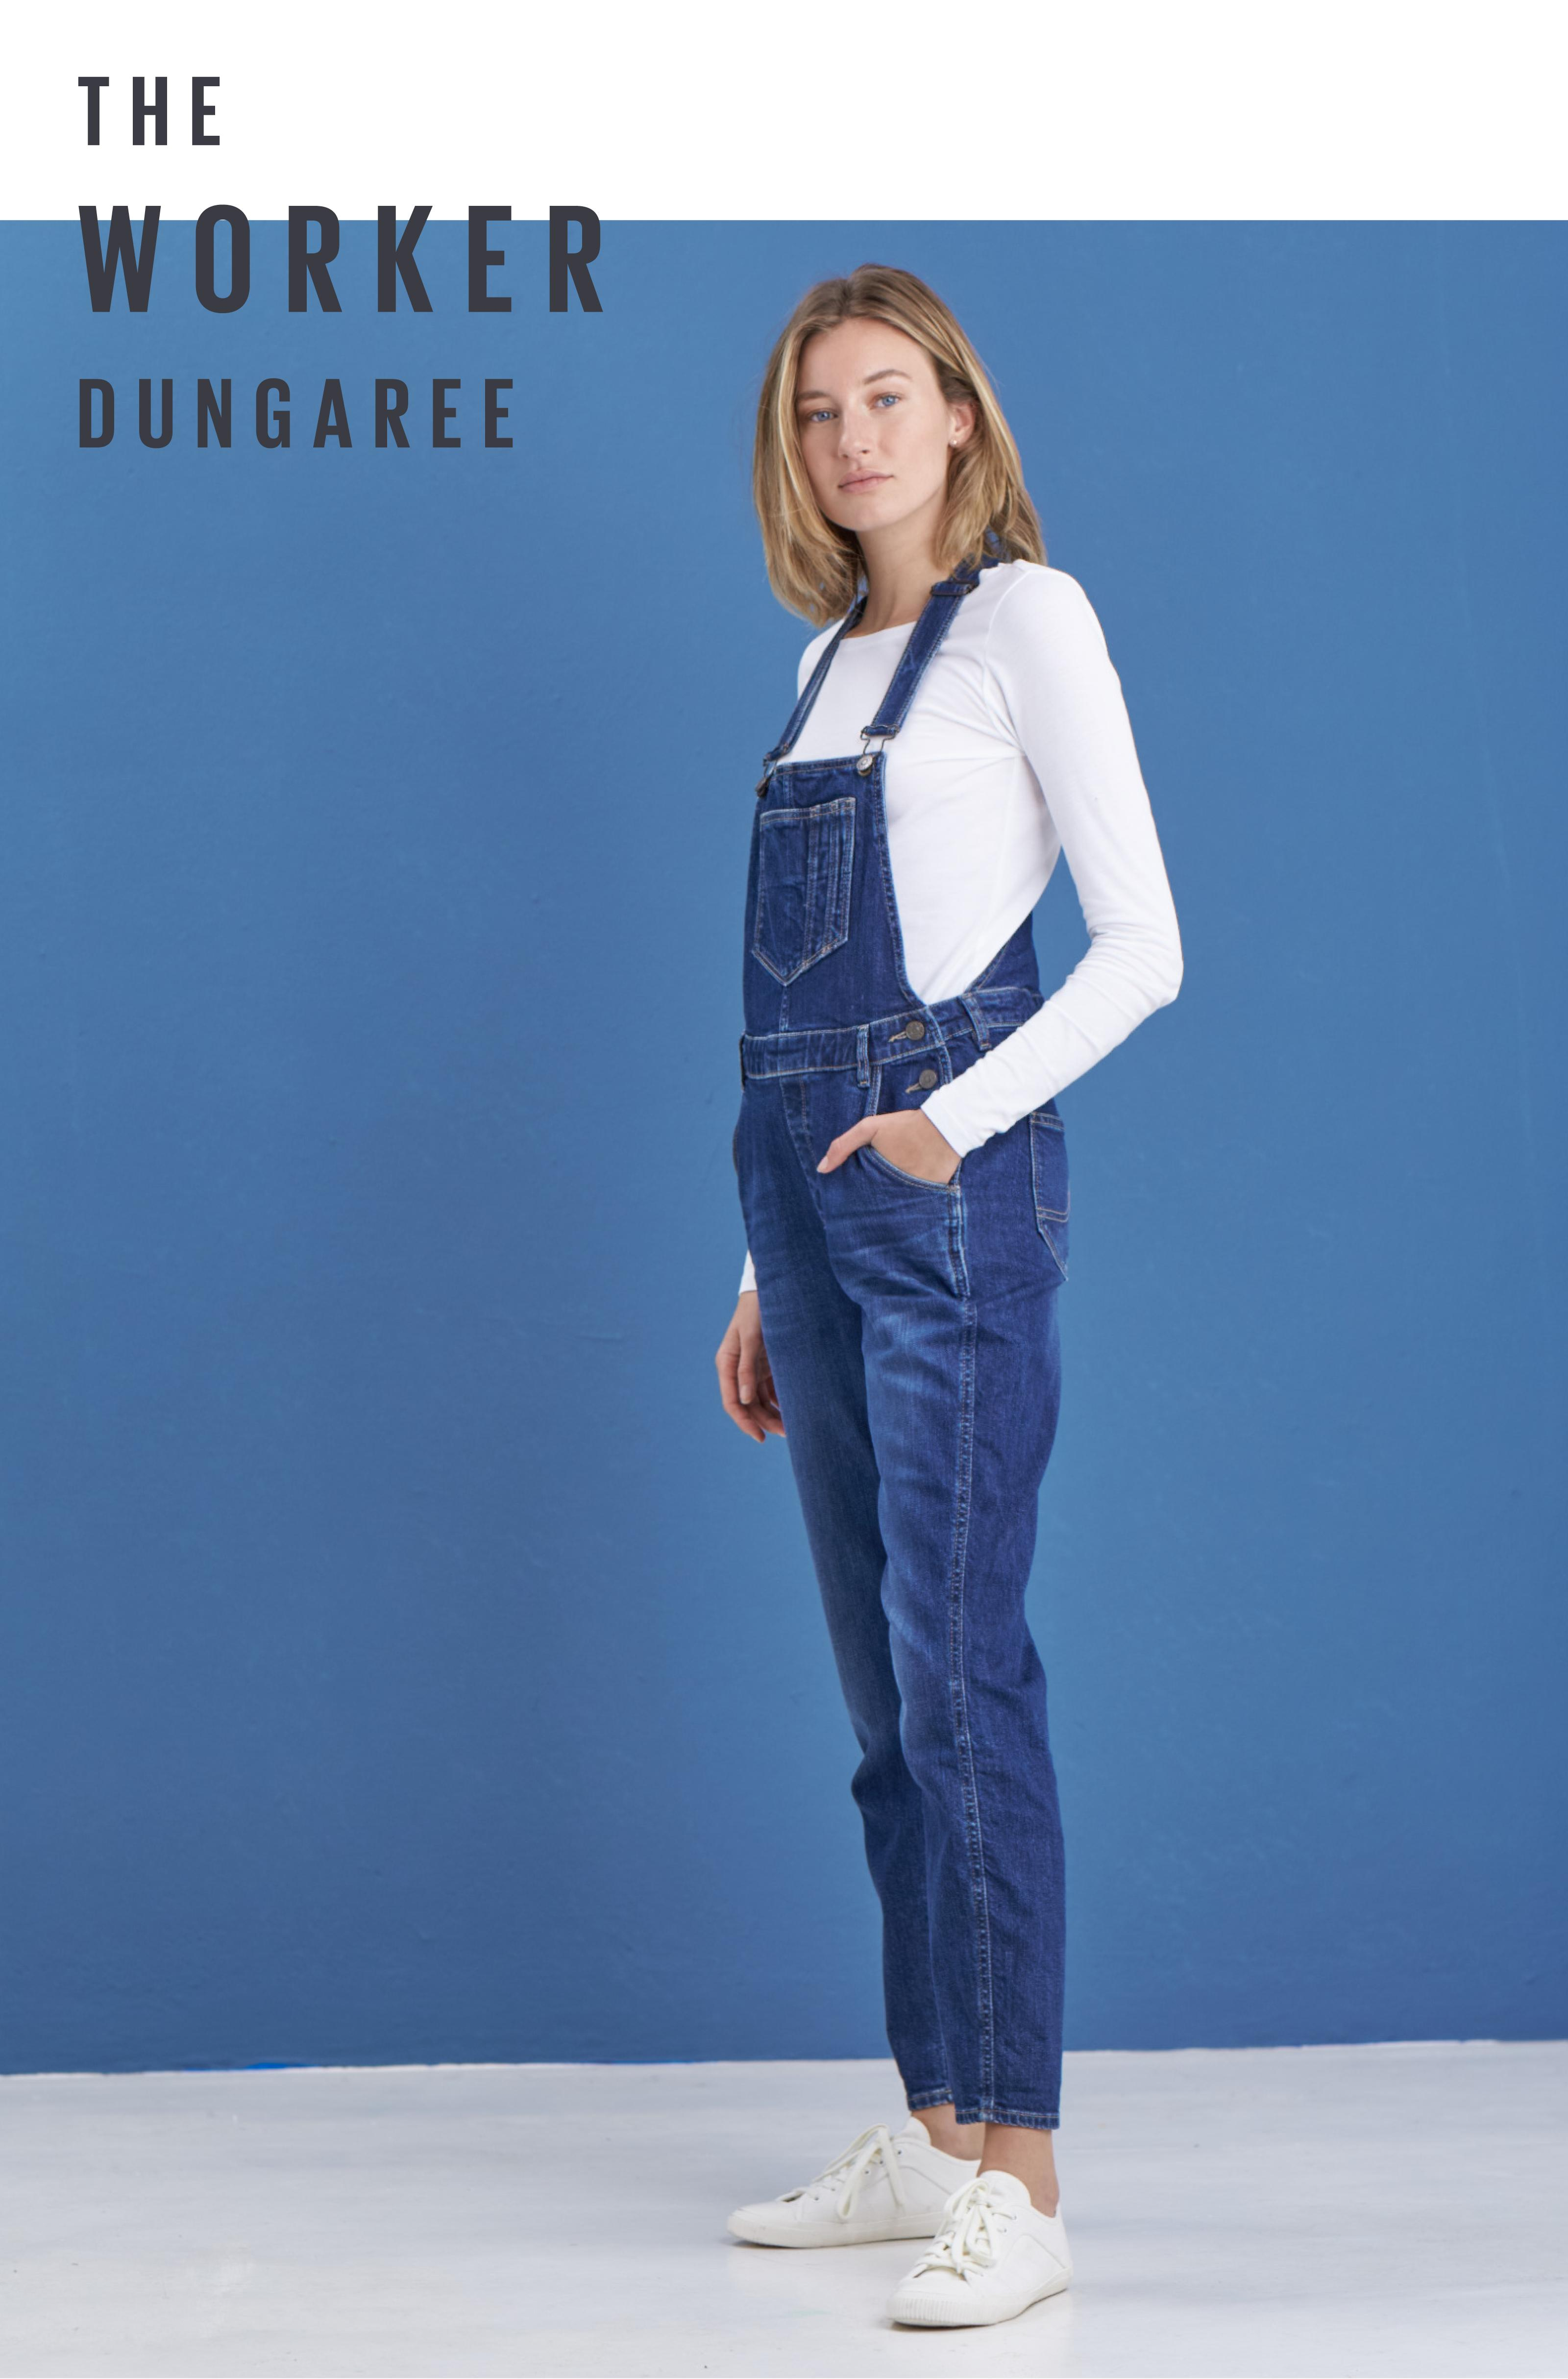 Female model wearing denim dungarees with a white long sleeve top and white trainers.